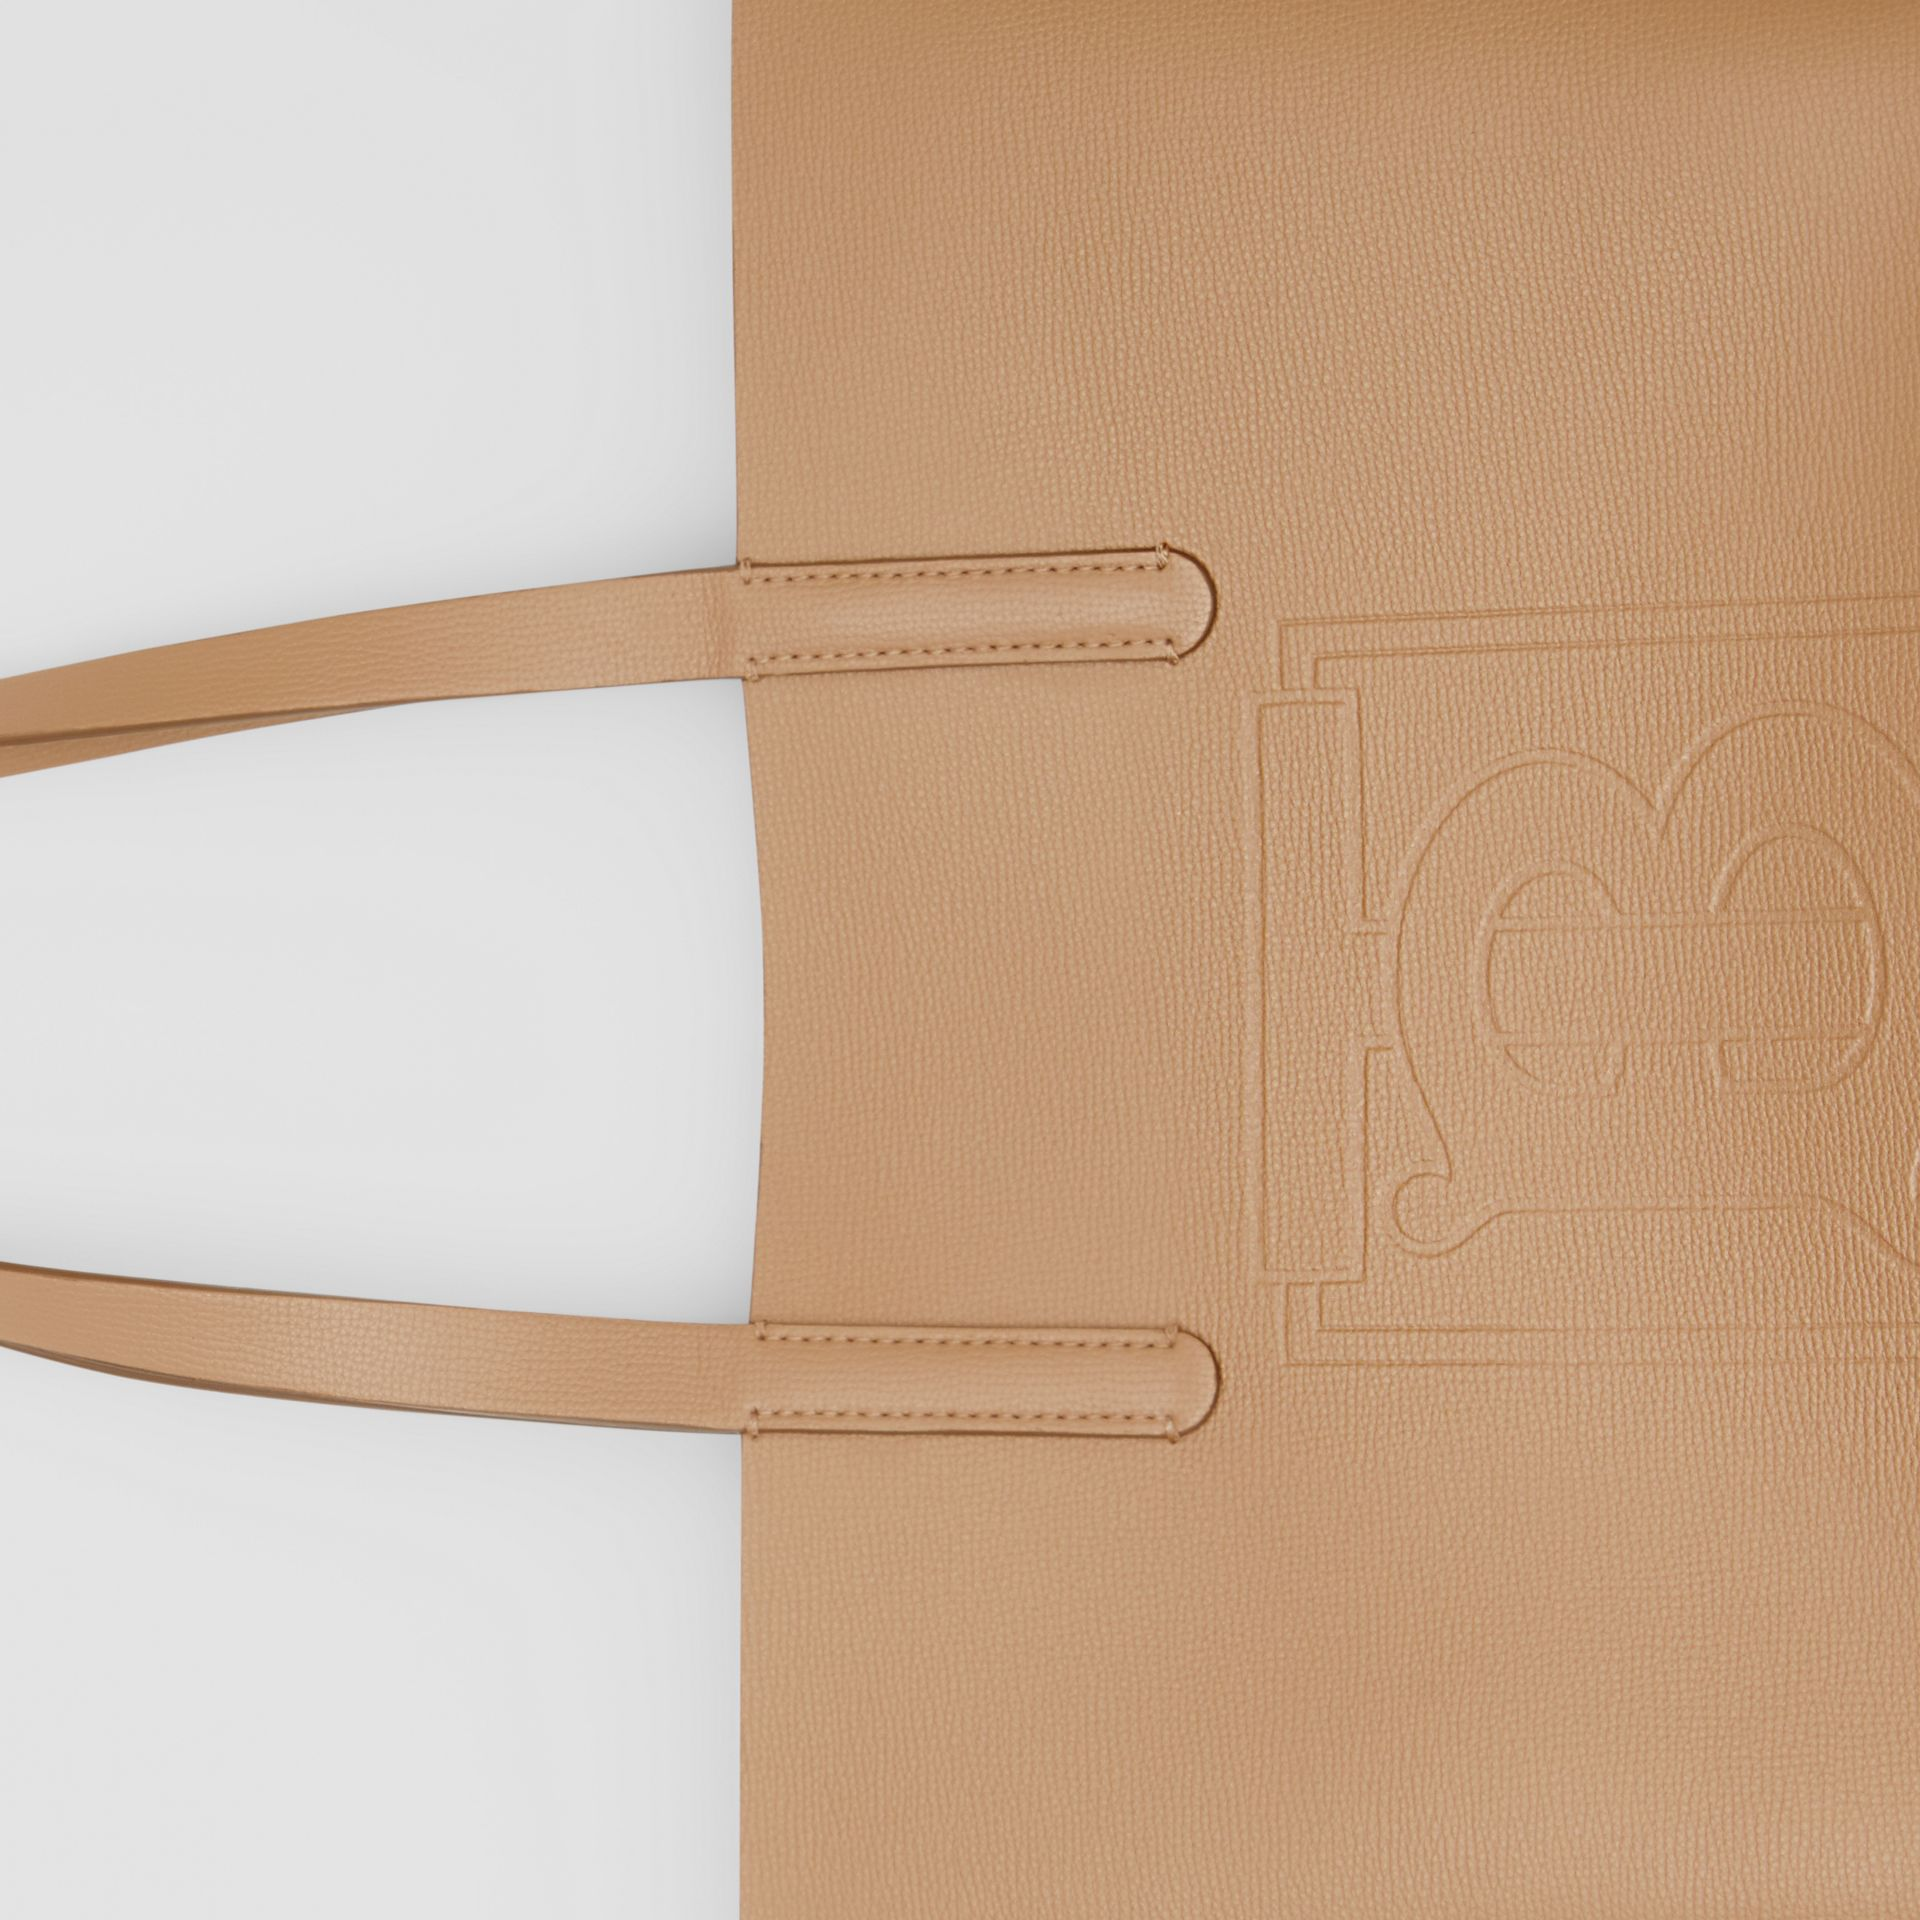 Embossed Monogram Motif Leather Tote in Camel - Women | Burberry Canada - gallery image 1